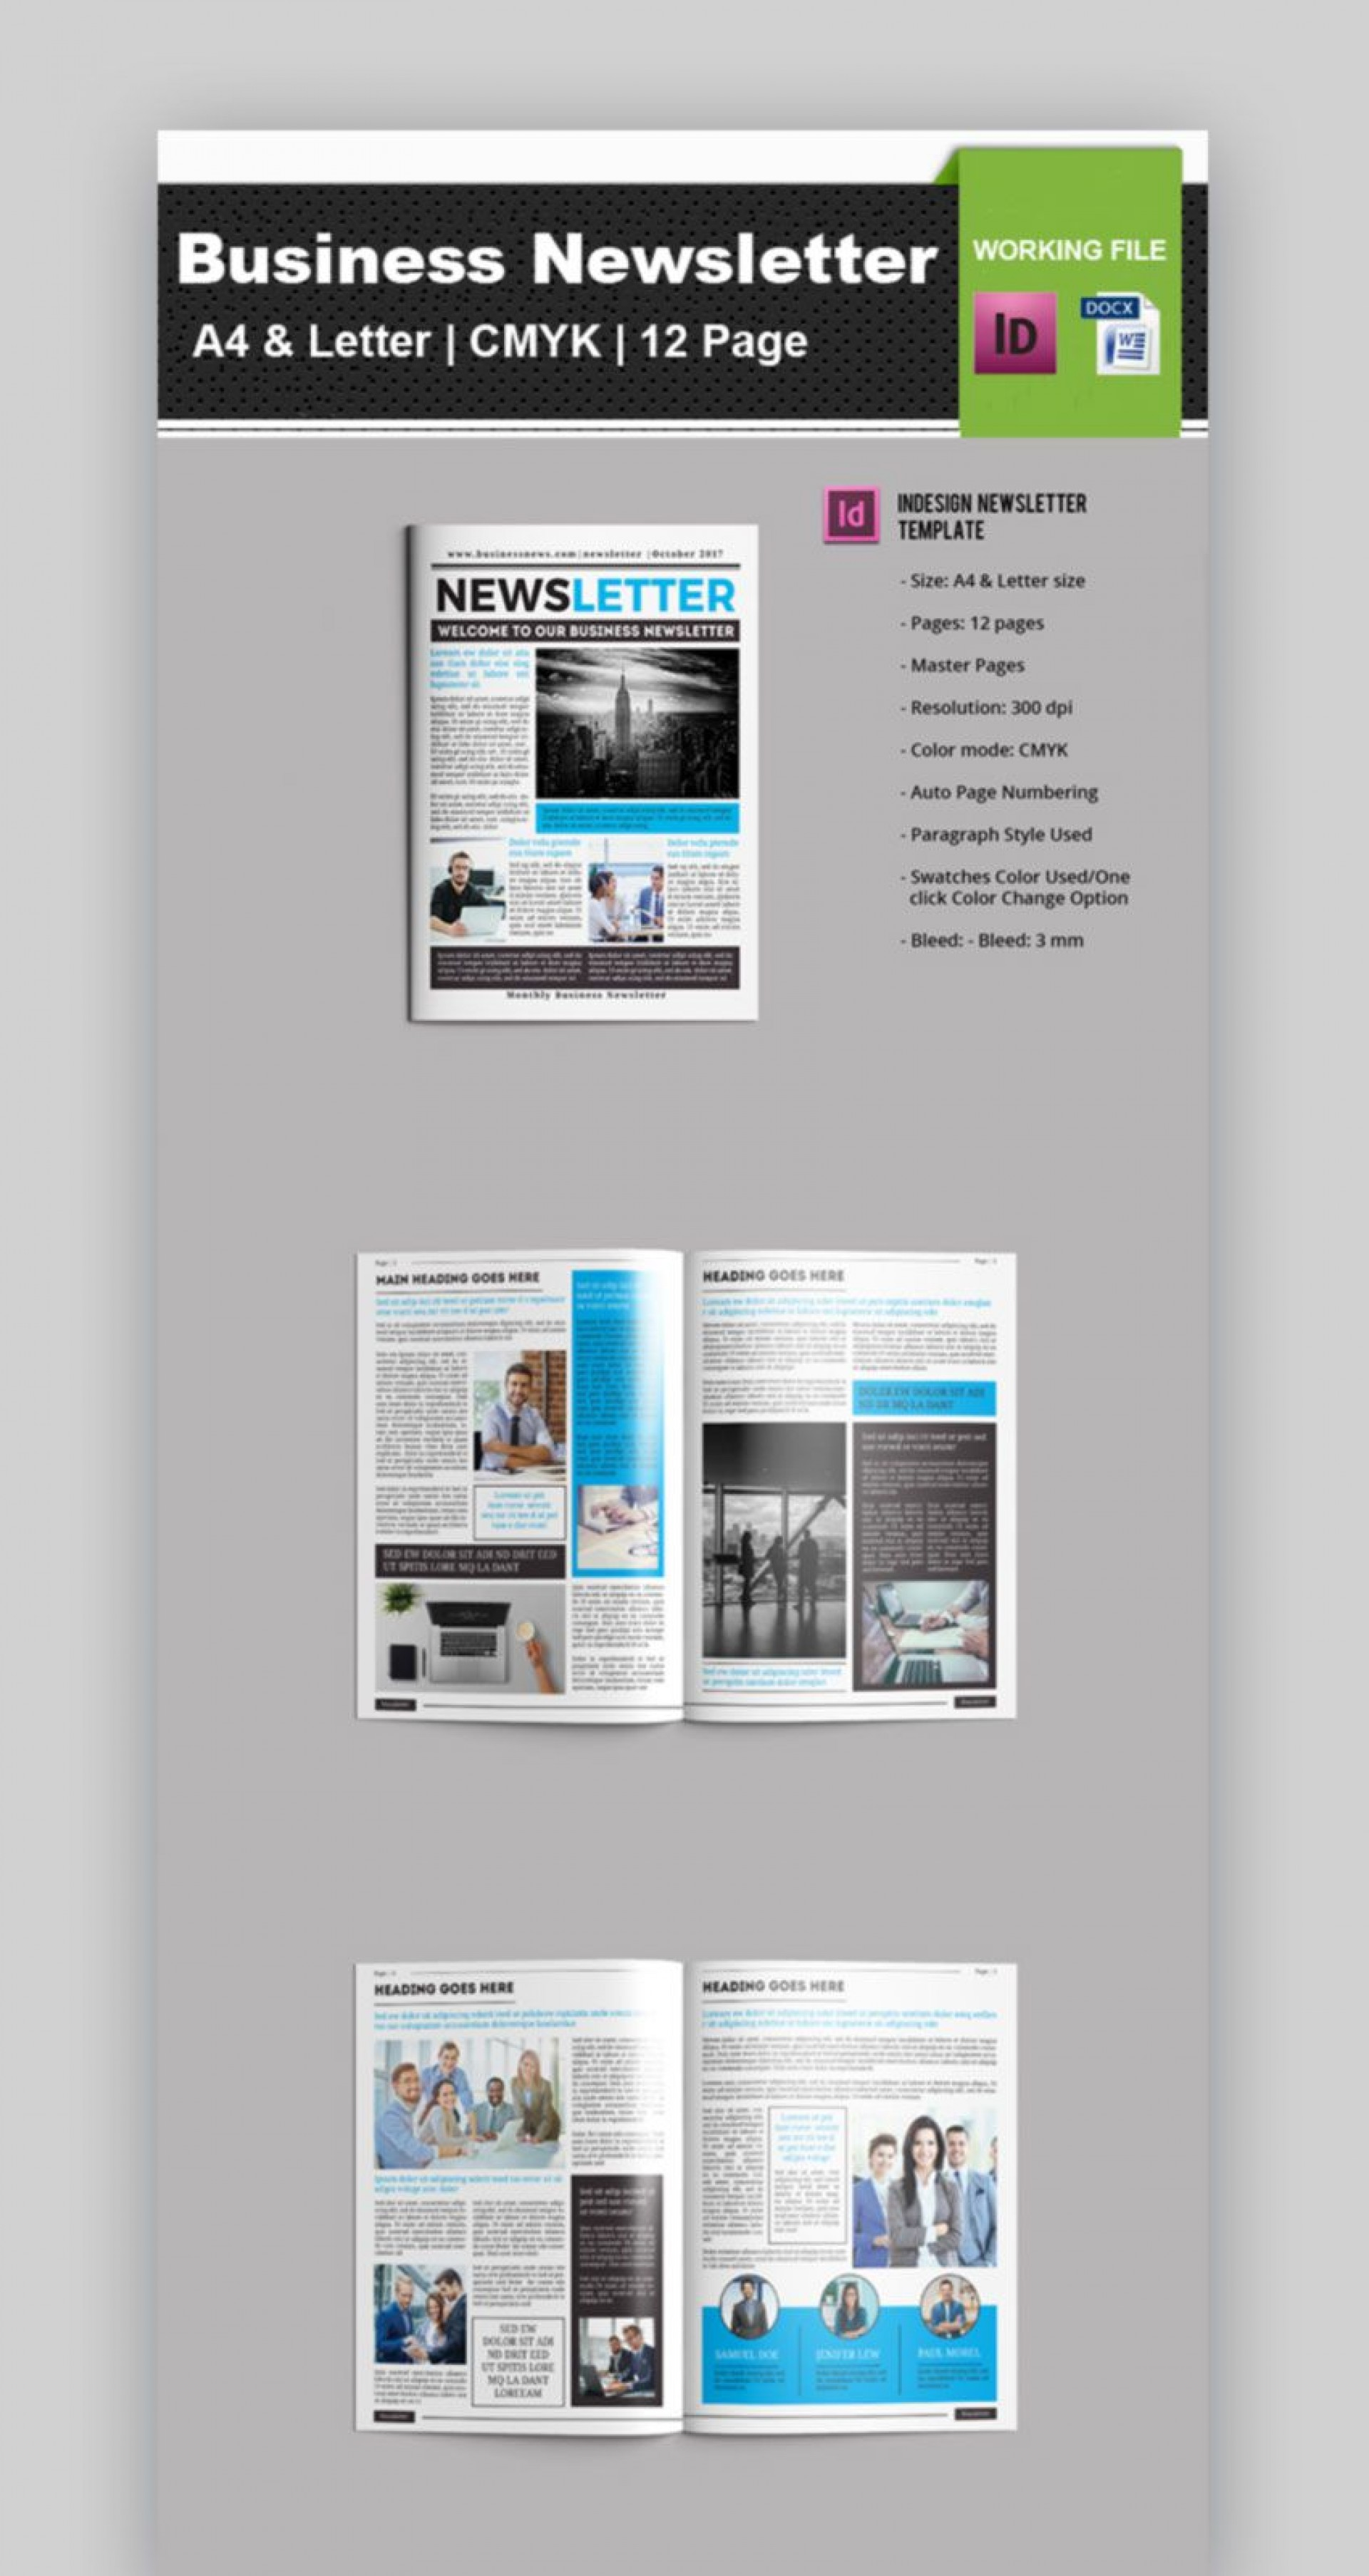 009 Astounding Free Microsoft Word Newsletter Template High Resolution  Templates Download M Medical1920